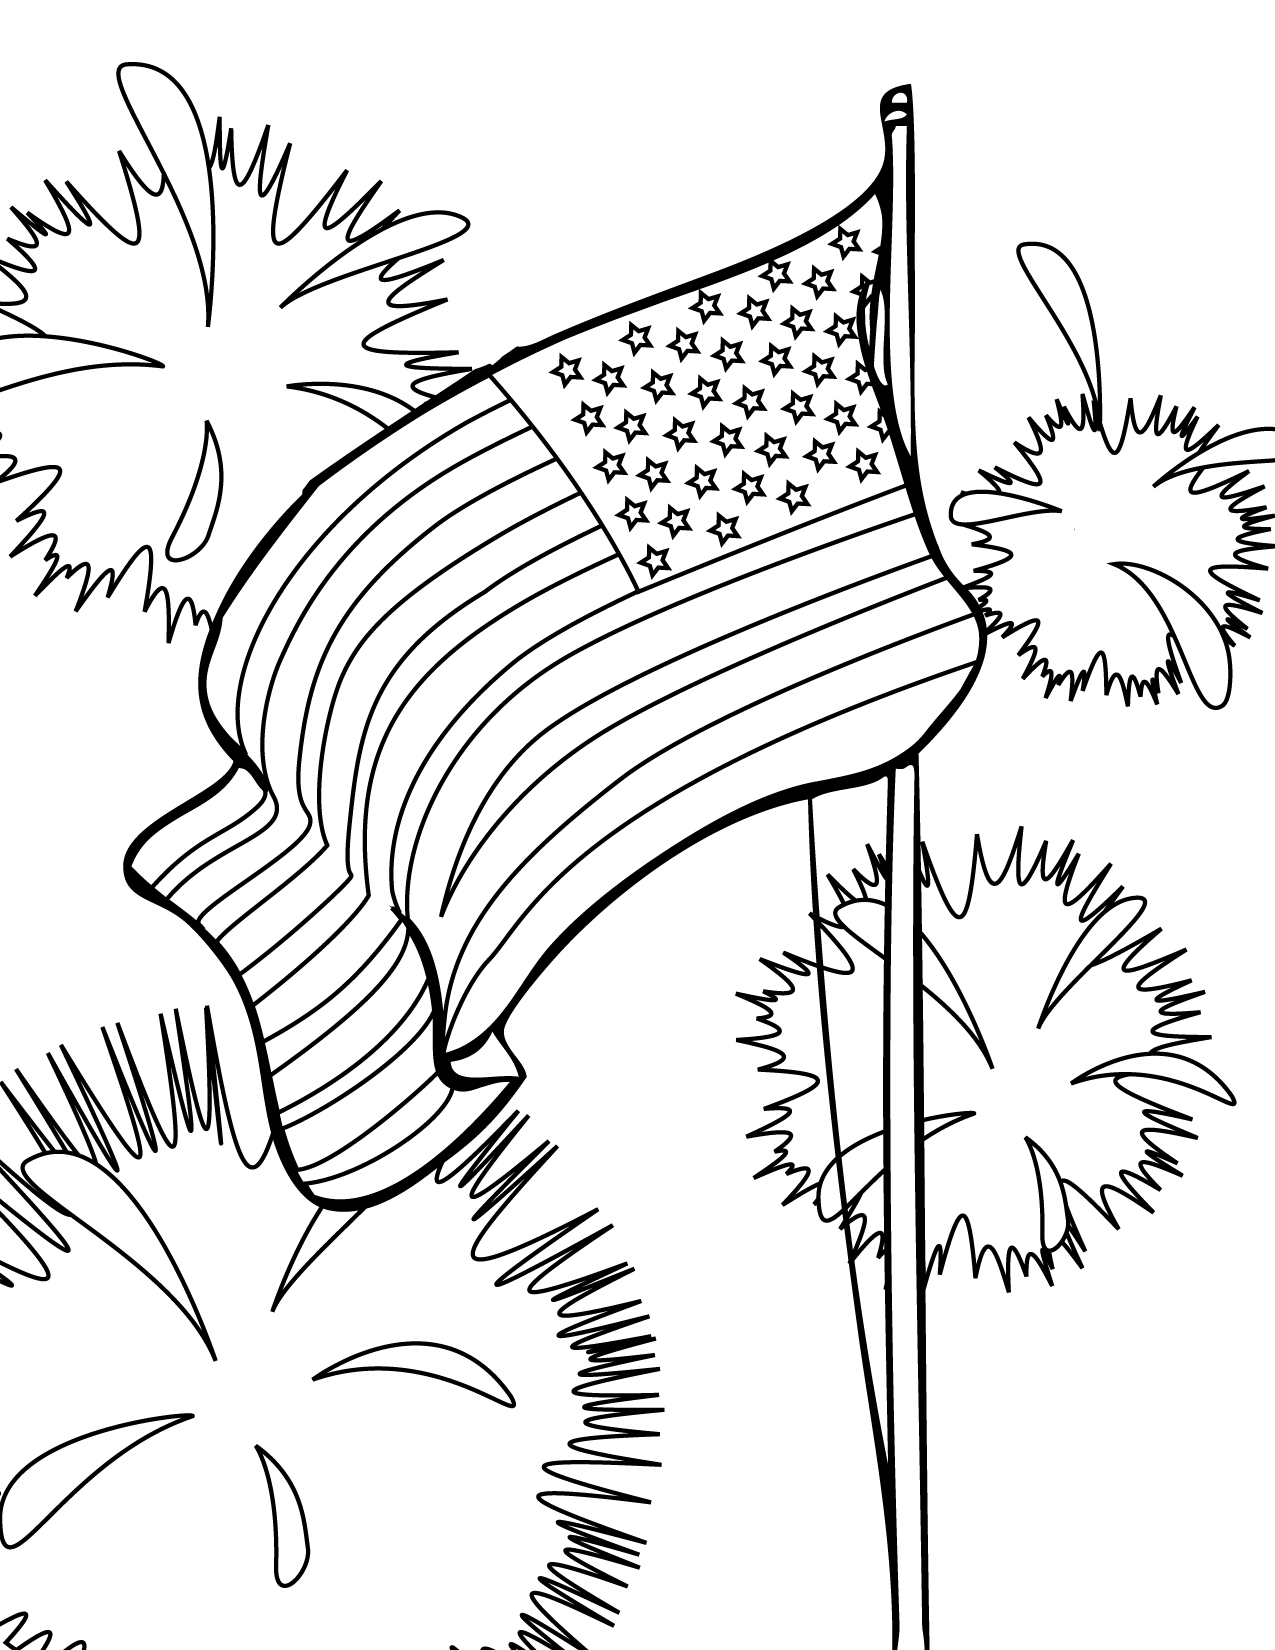 image relating to 4th of July Coloring Pages Printable called 4th of July Coloring Internet pages - Least difficult Coloring Web pages For Young children